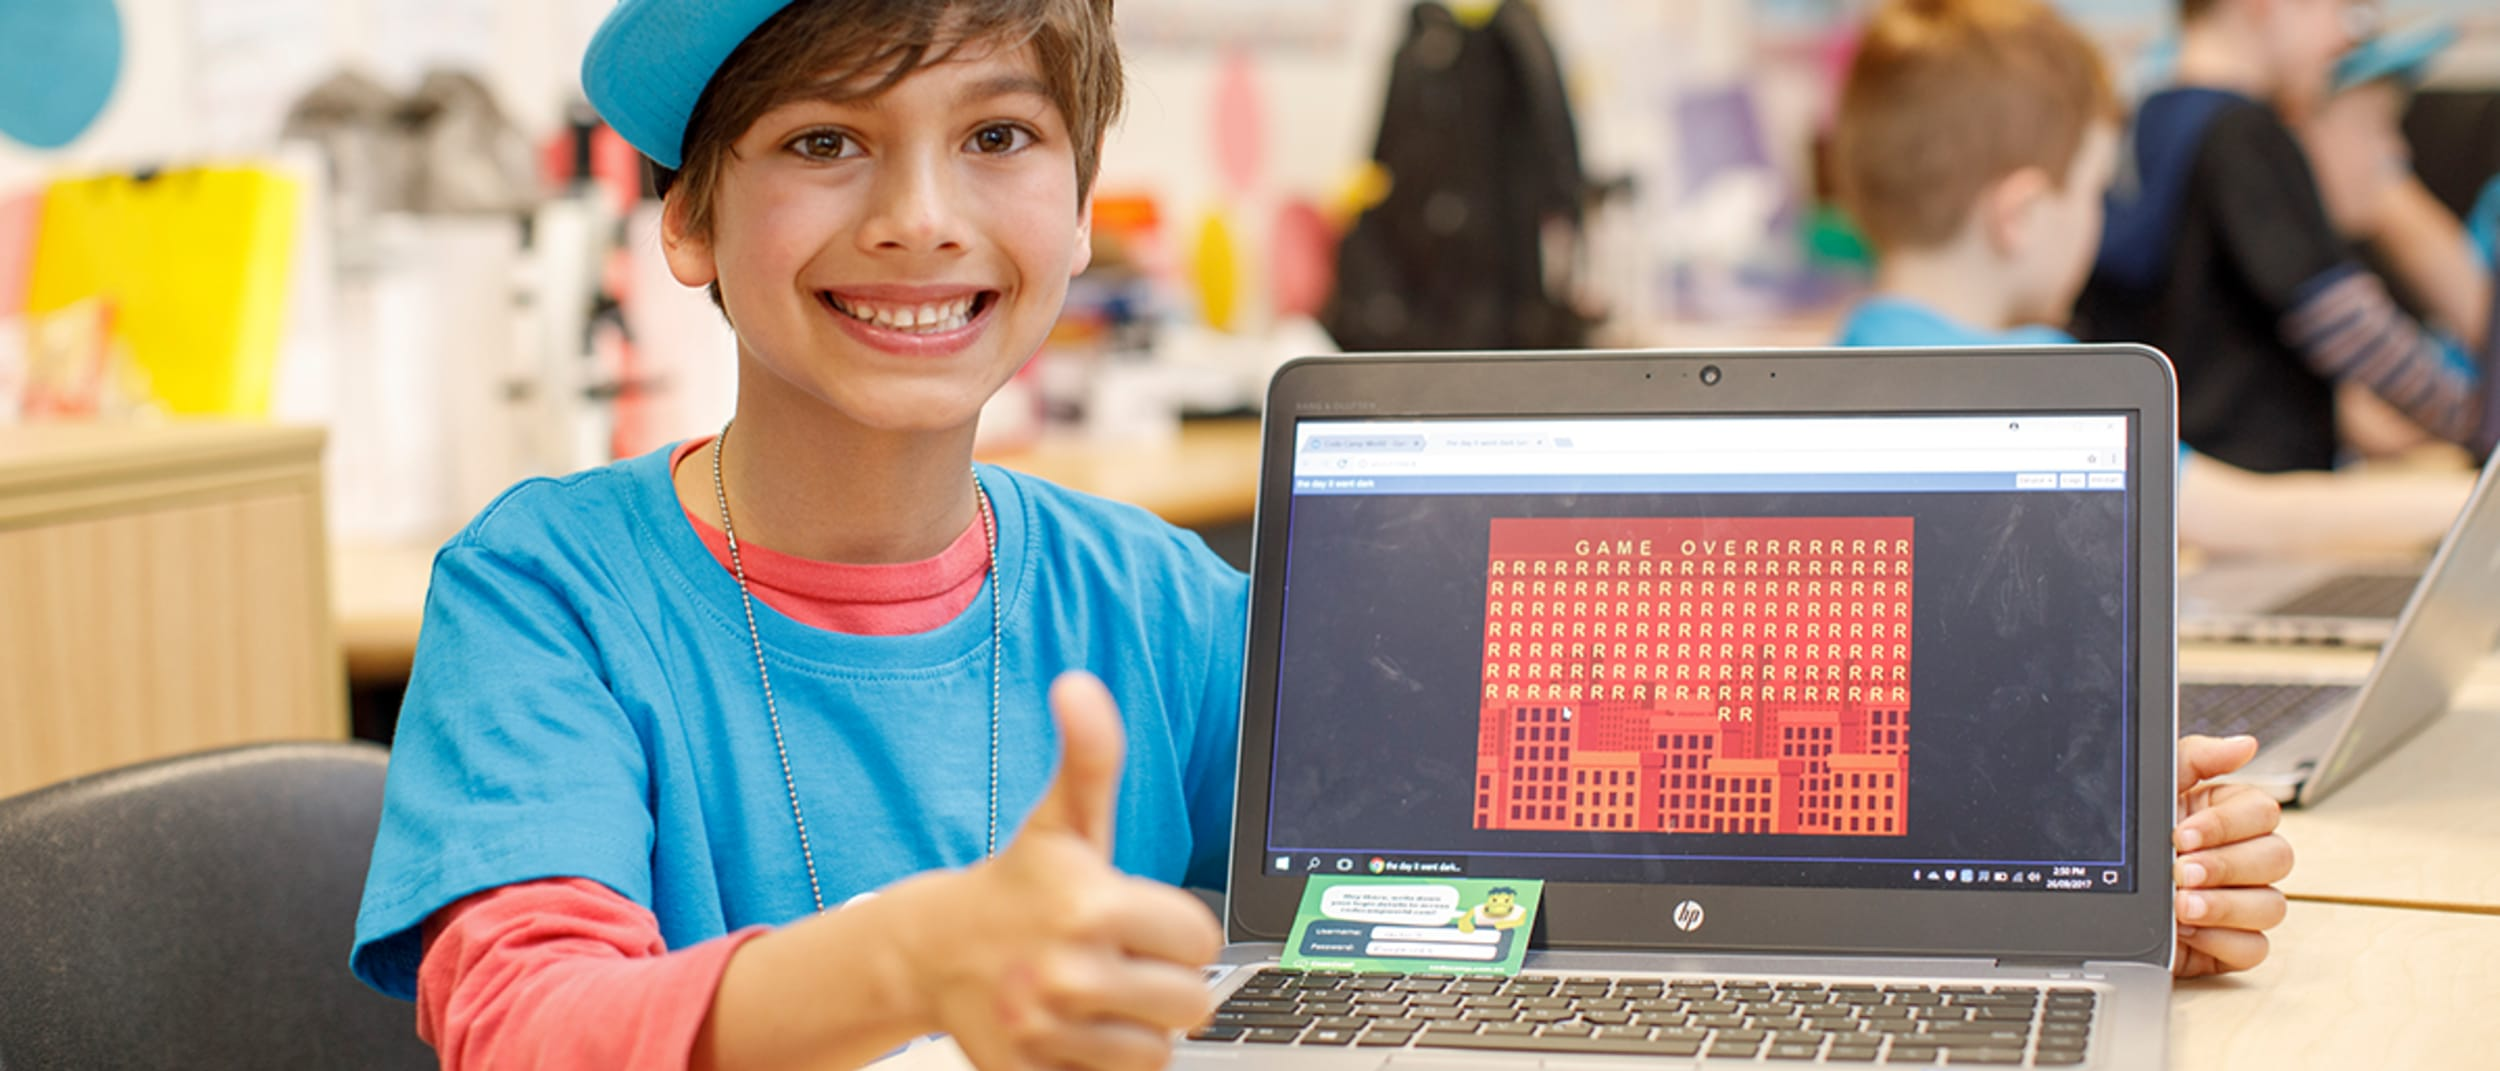 Create your own computer game at Code Camp! Book now!